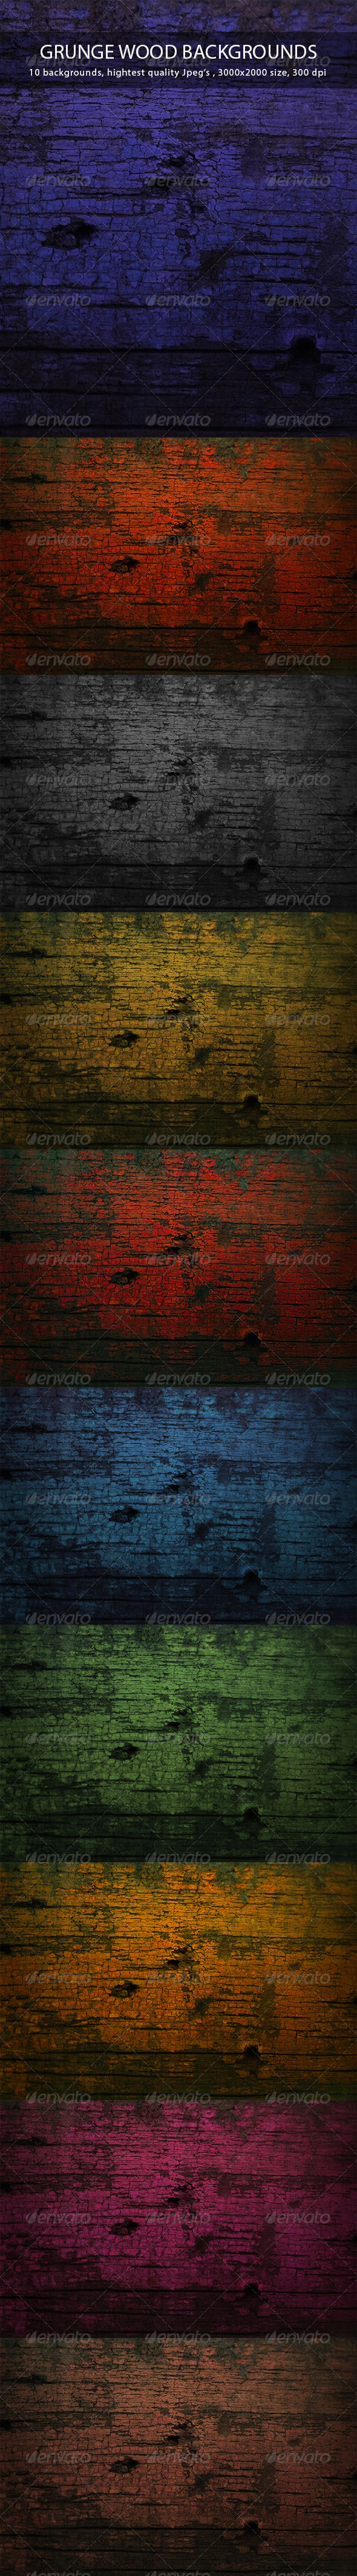 GraphicRiver Grunge Wood Backgrounds 7600830